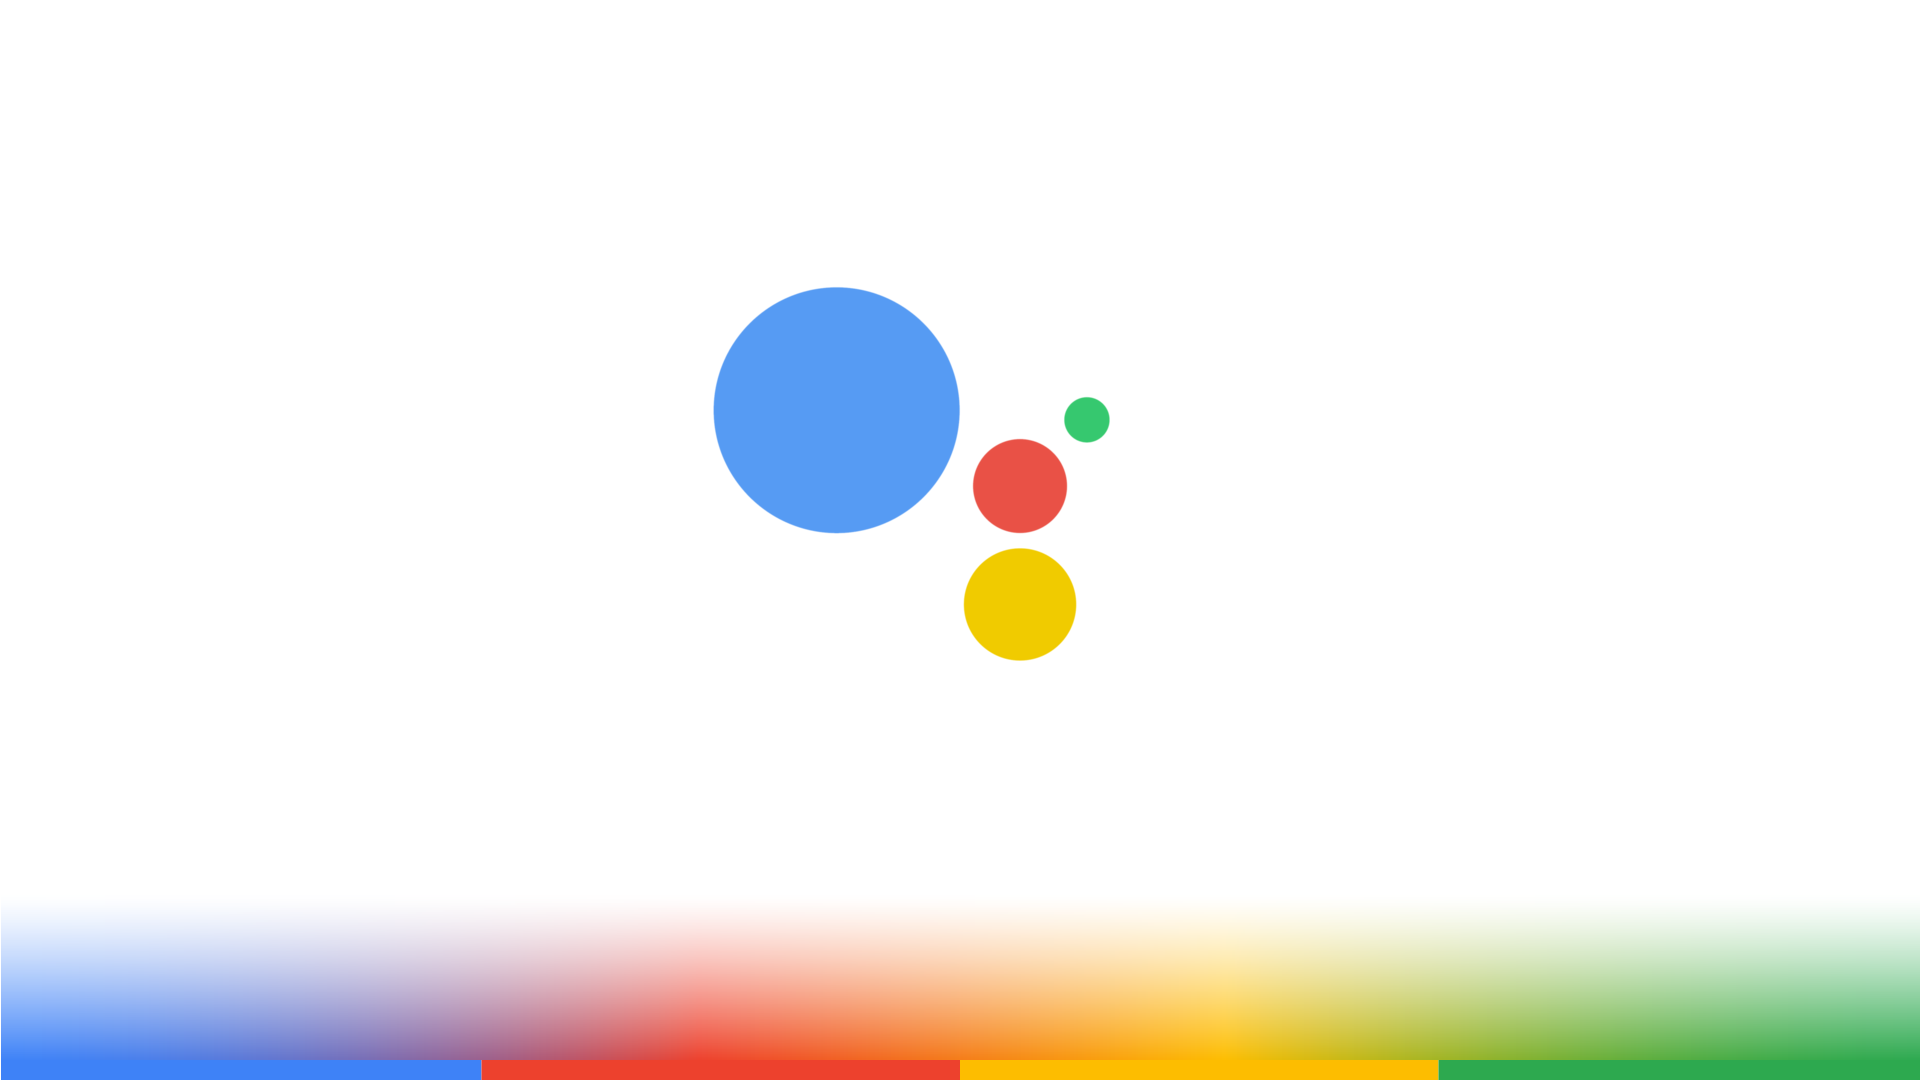 Google unifies the old and new Assistant UIs for all devices